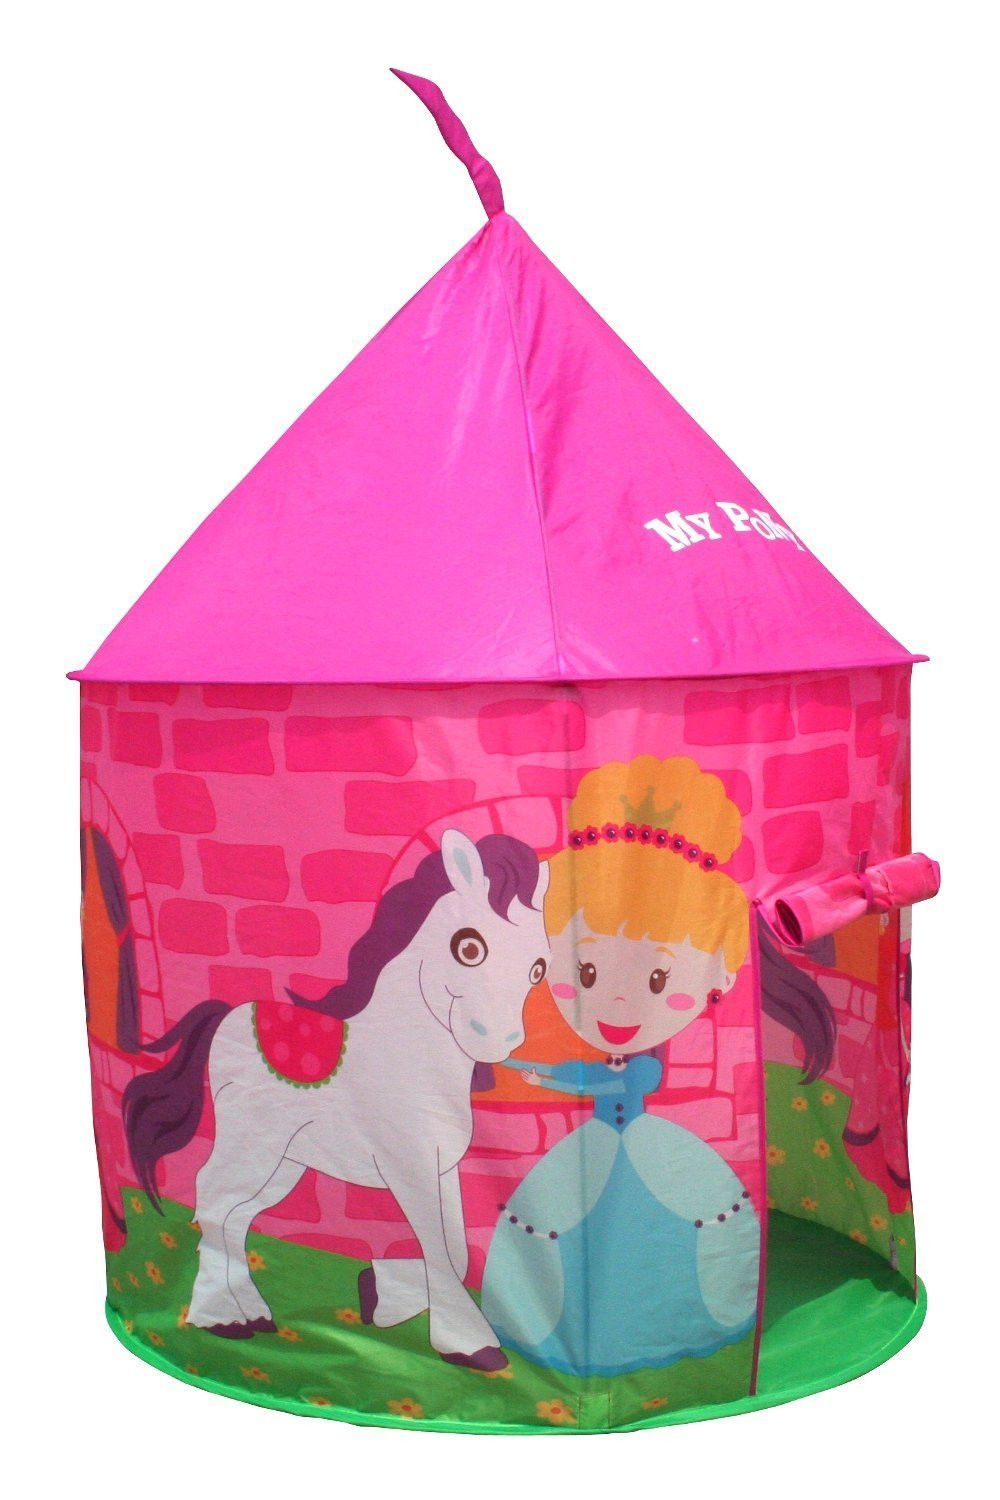 Princess Palace Pink Play Tent | Kids play tent, Girls play tent, Best toddler toys